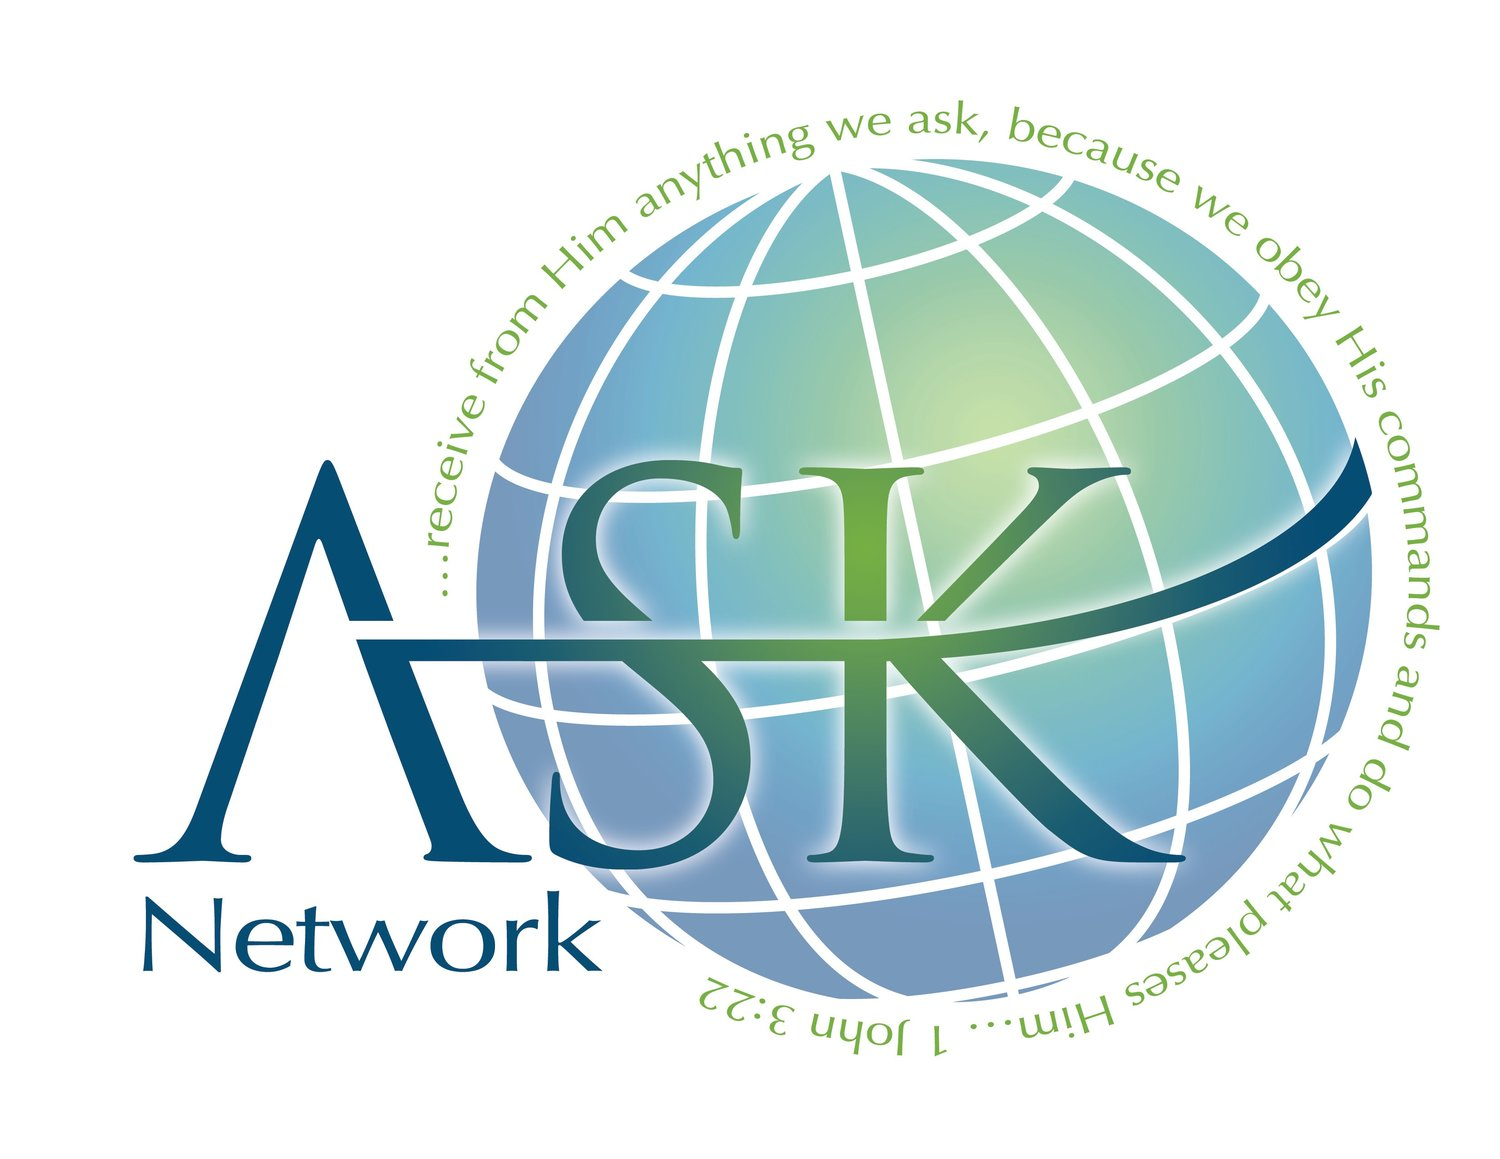 ASK Network Canada